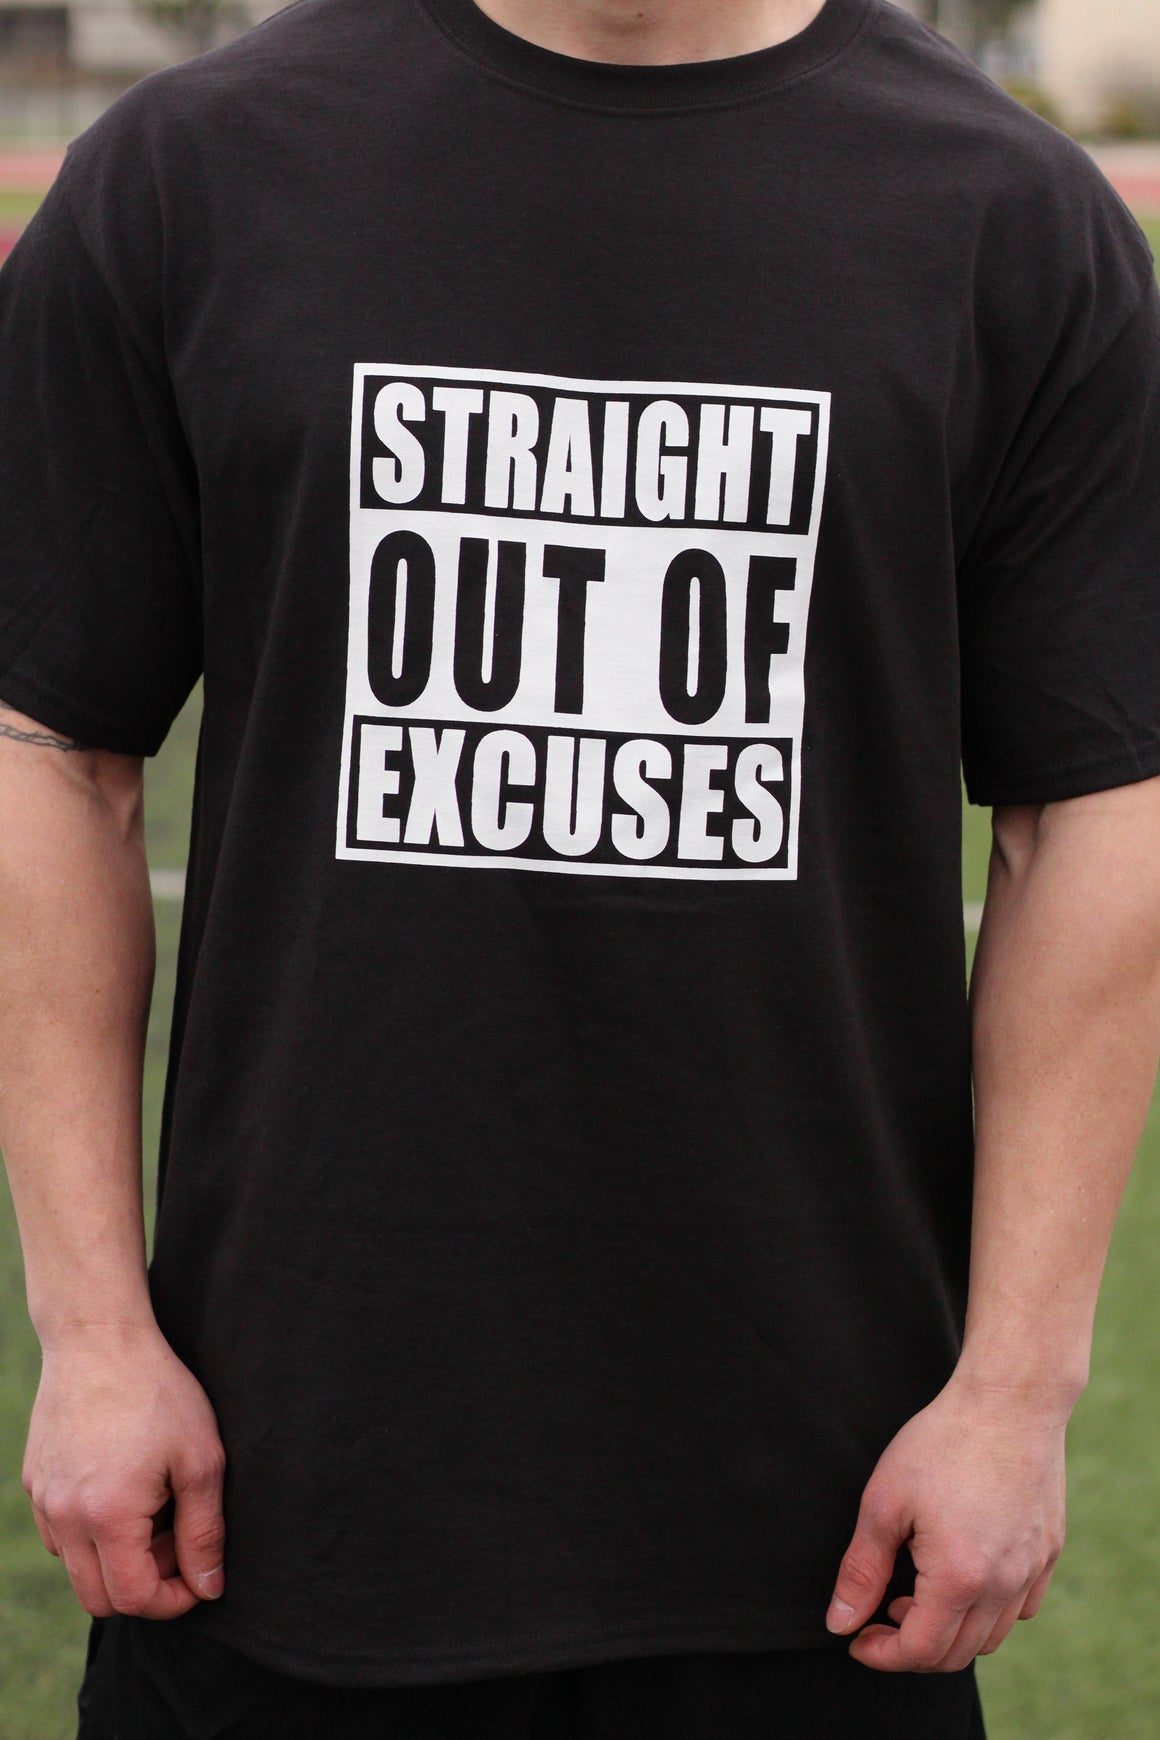 Straight Outta Excuses Men's Workout Shirt - The Sox Box